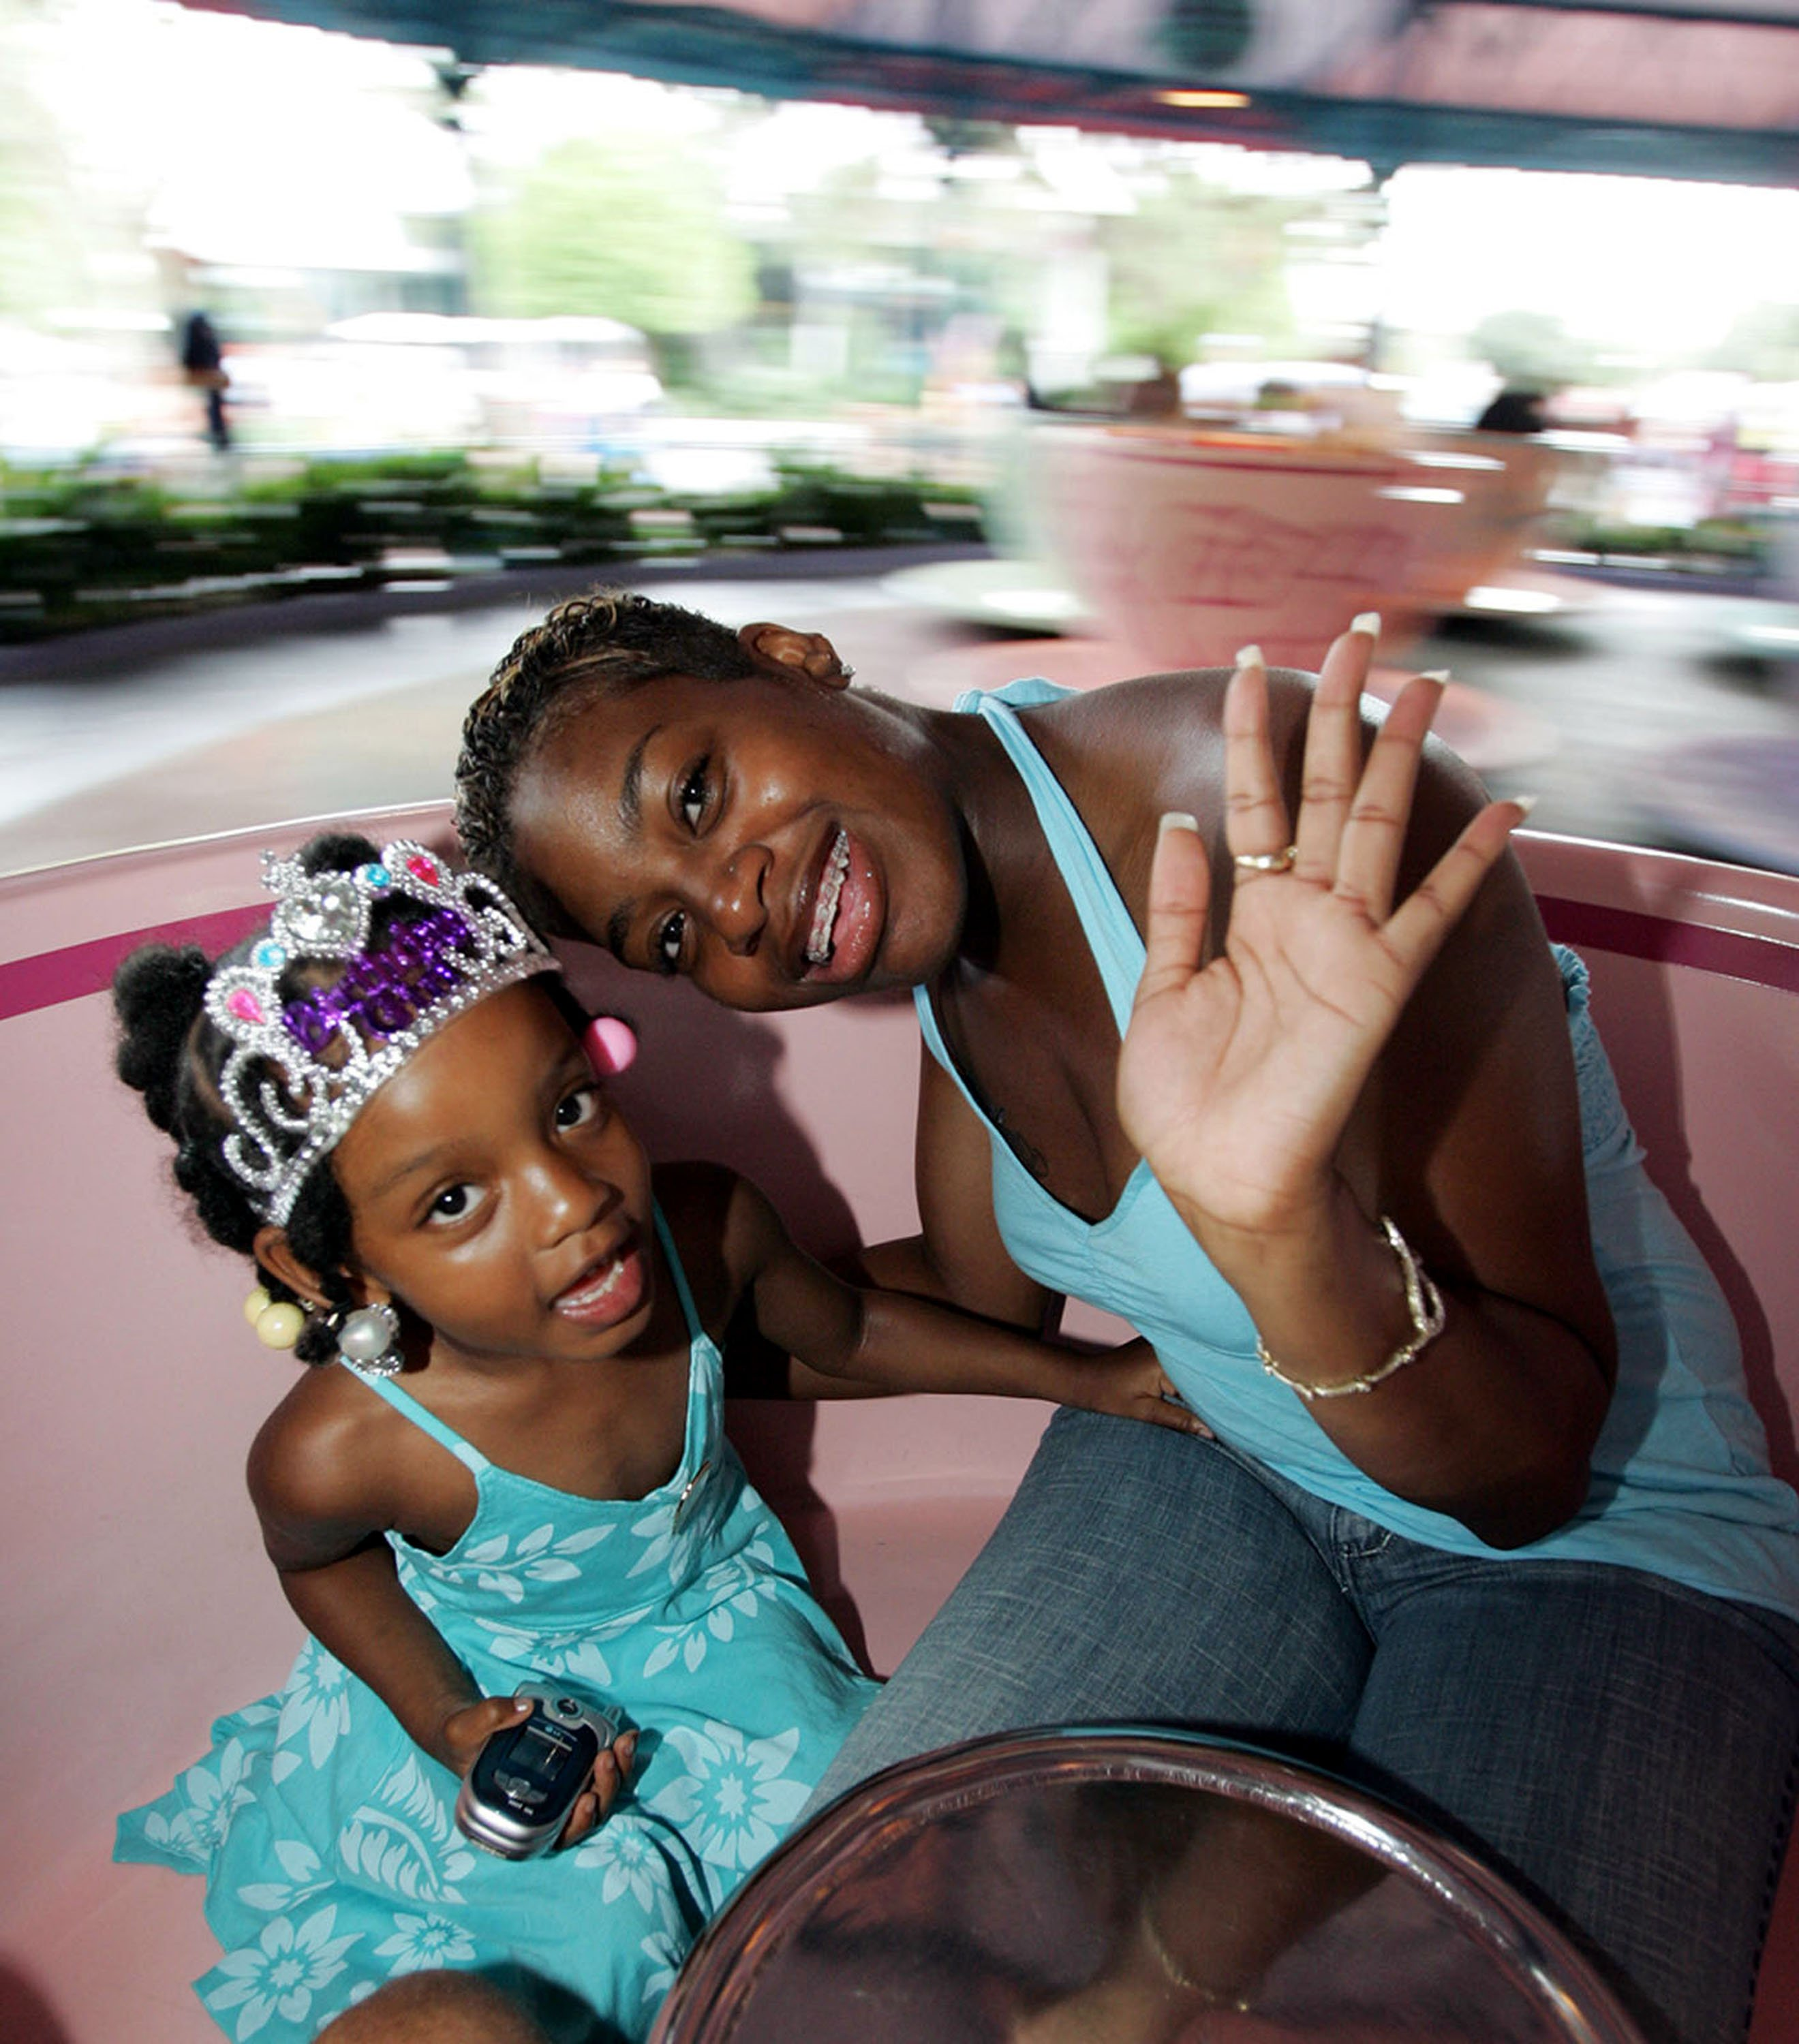 Fantasia Barrino and Zion, 4, at Walt Disney's Magic Kingdom on Aug. 8, 2005 in Florida. | Photo: Getty images